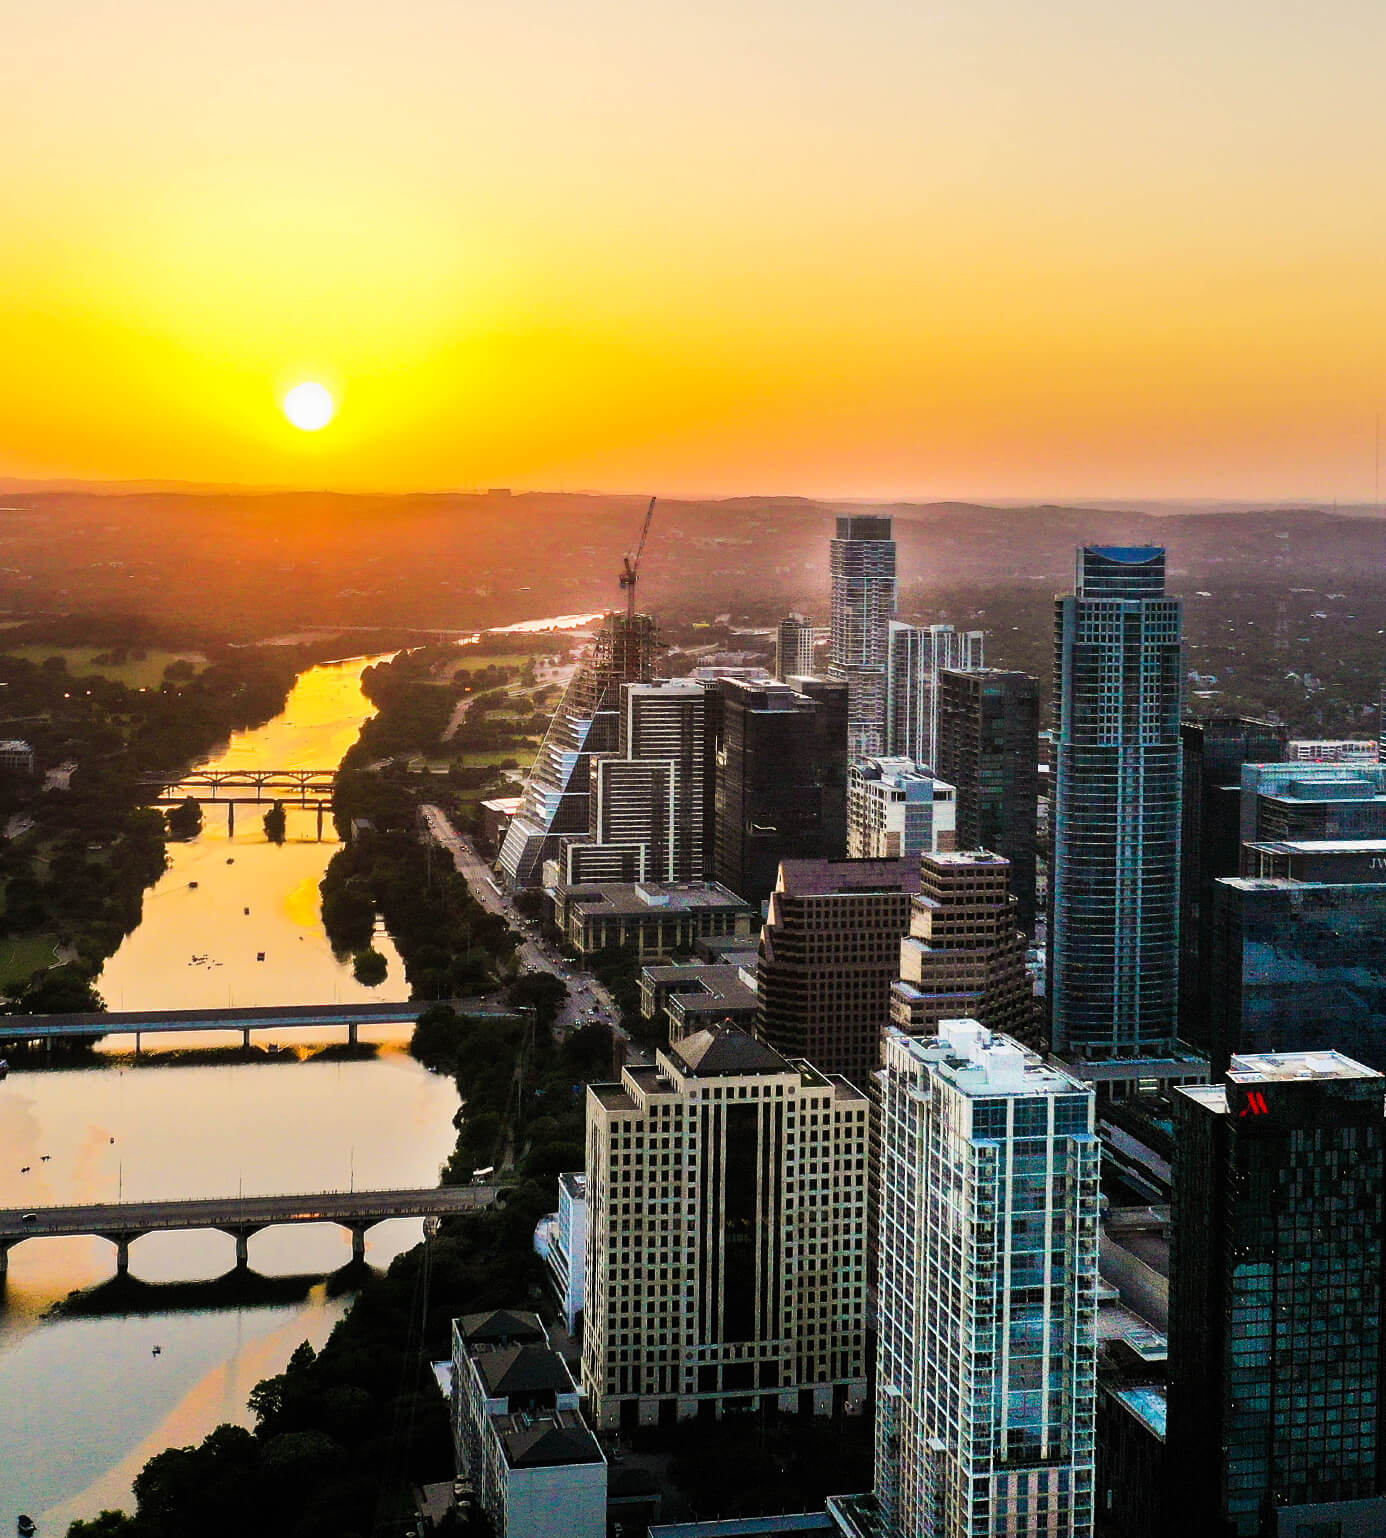 downtown Austin Texas with a view of the sunset over the Colorado River